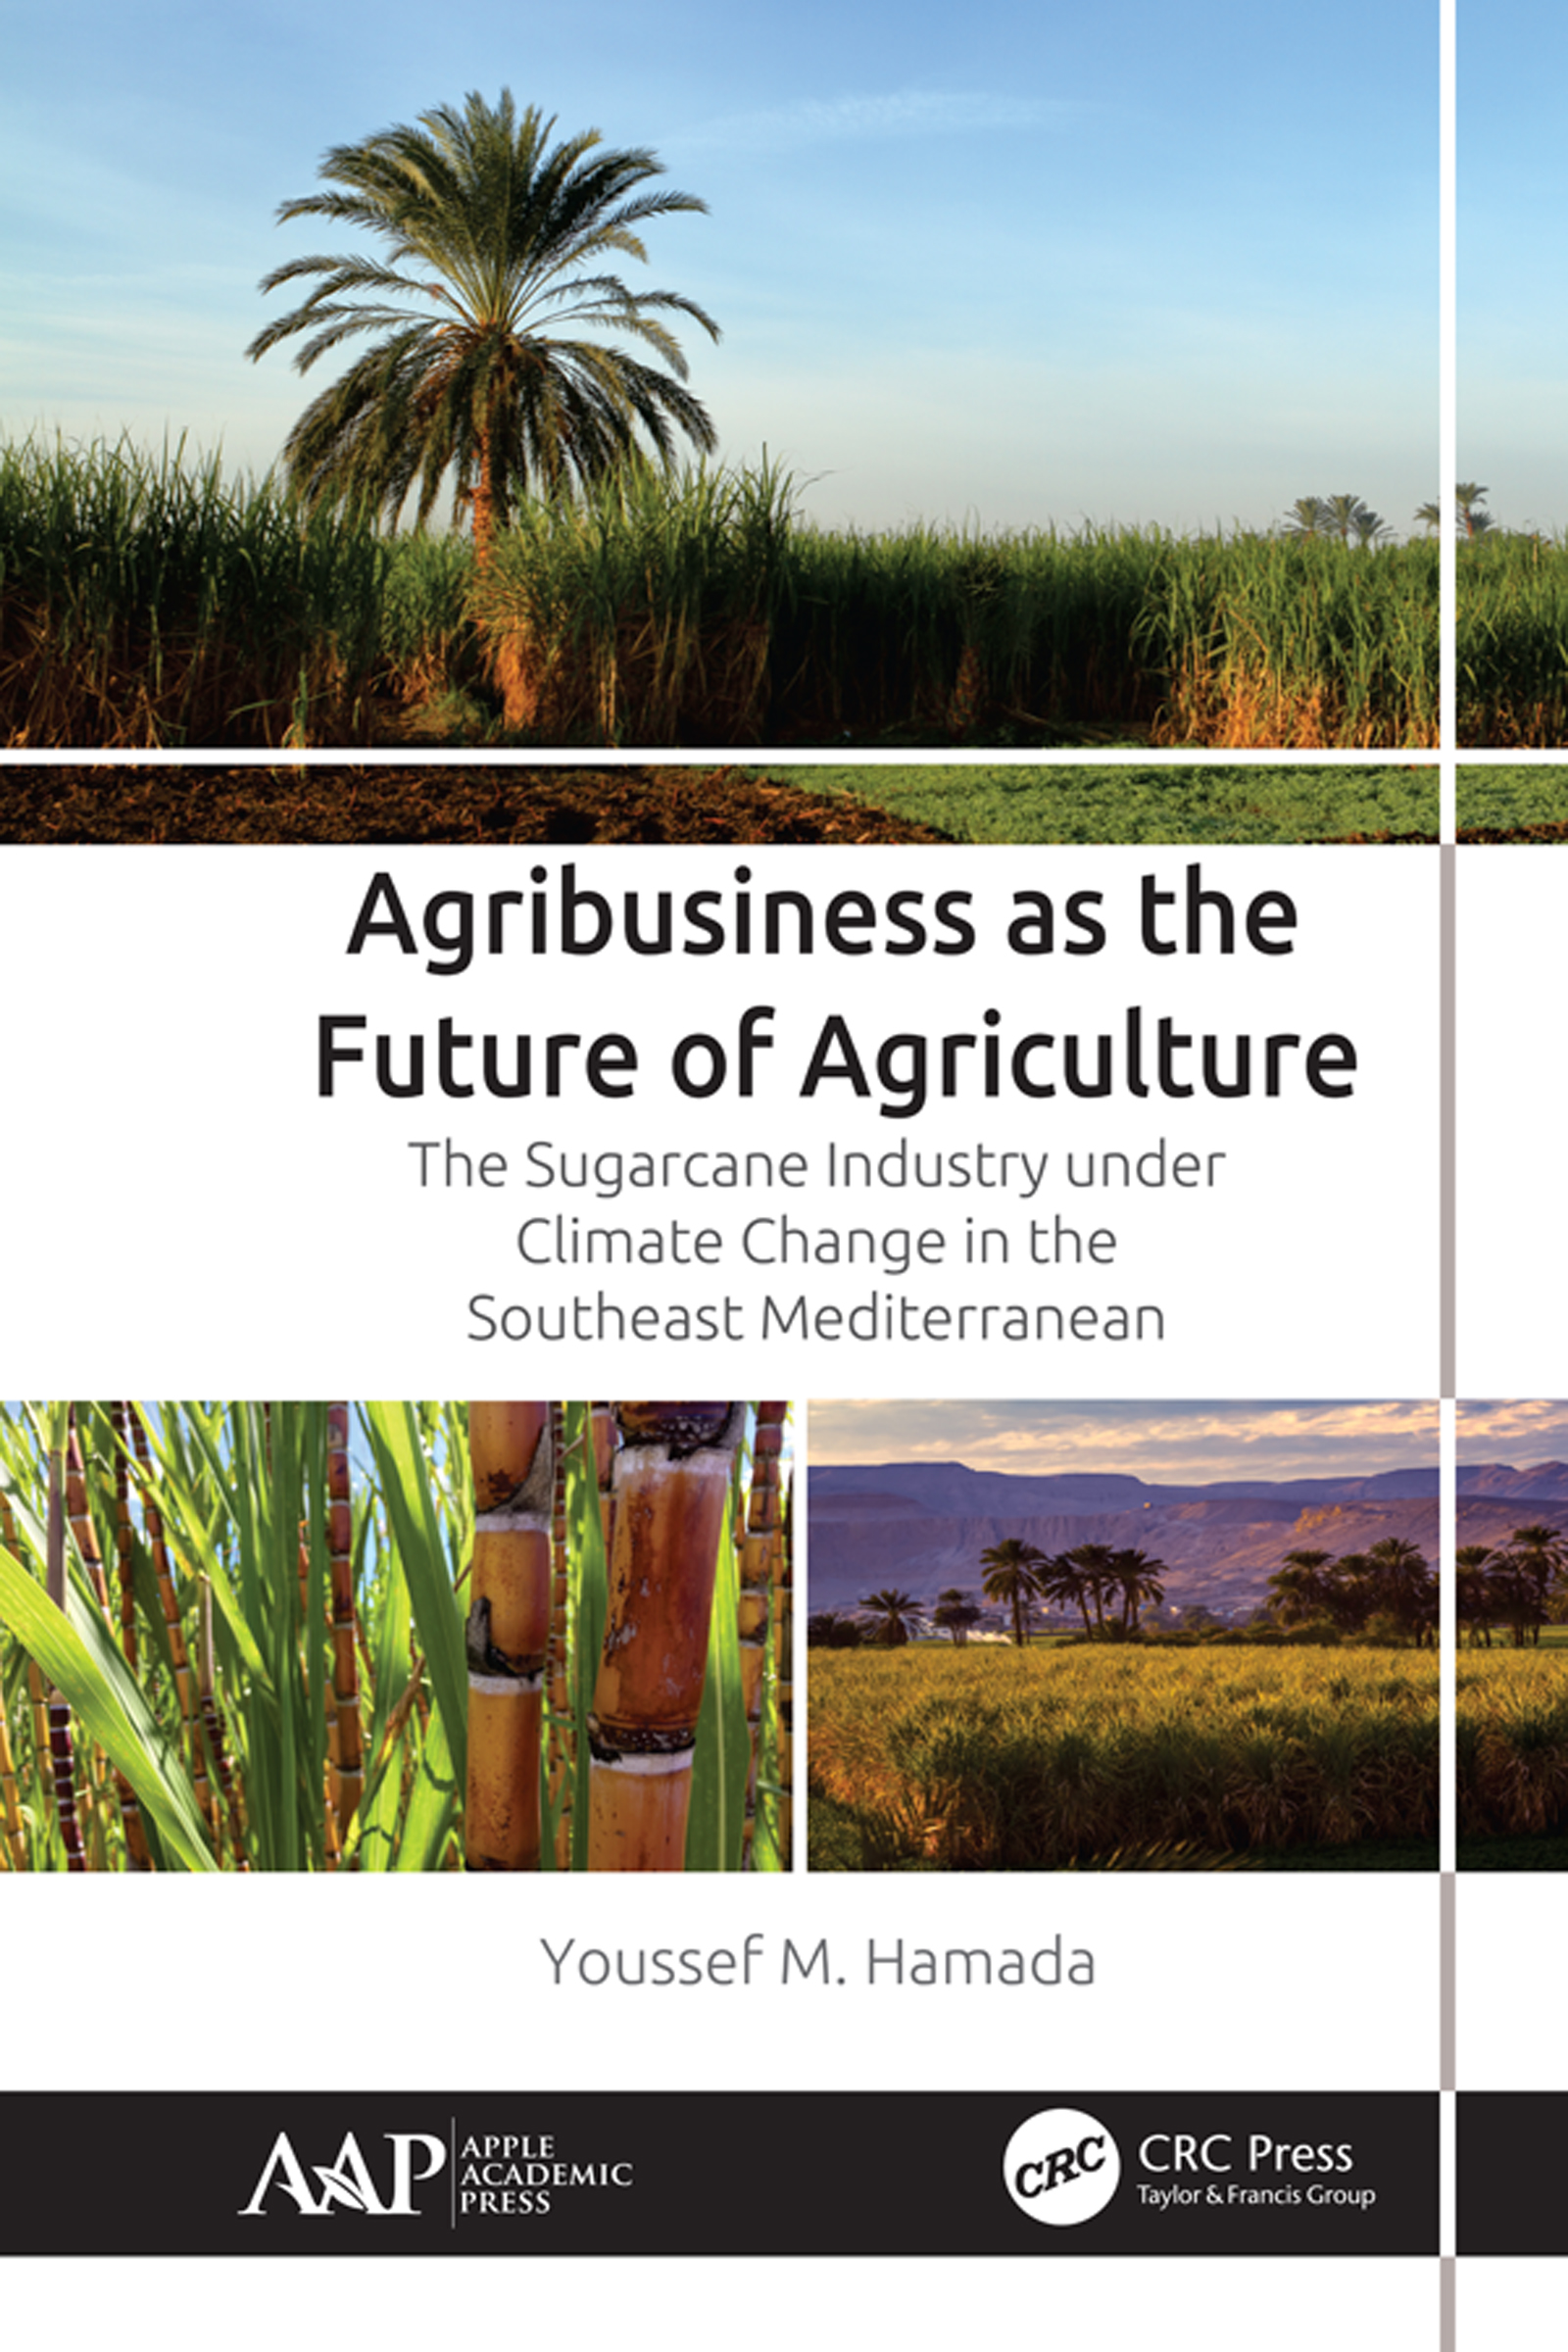 Agribusiness as the Future of Agriculture